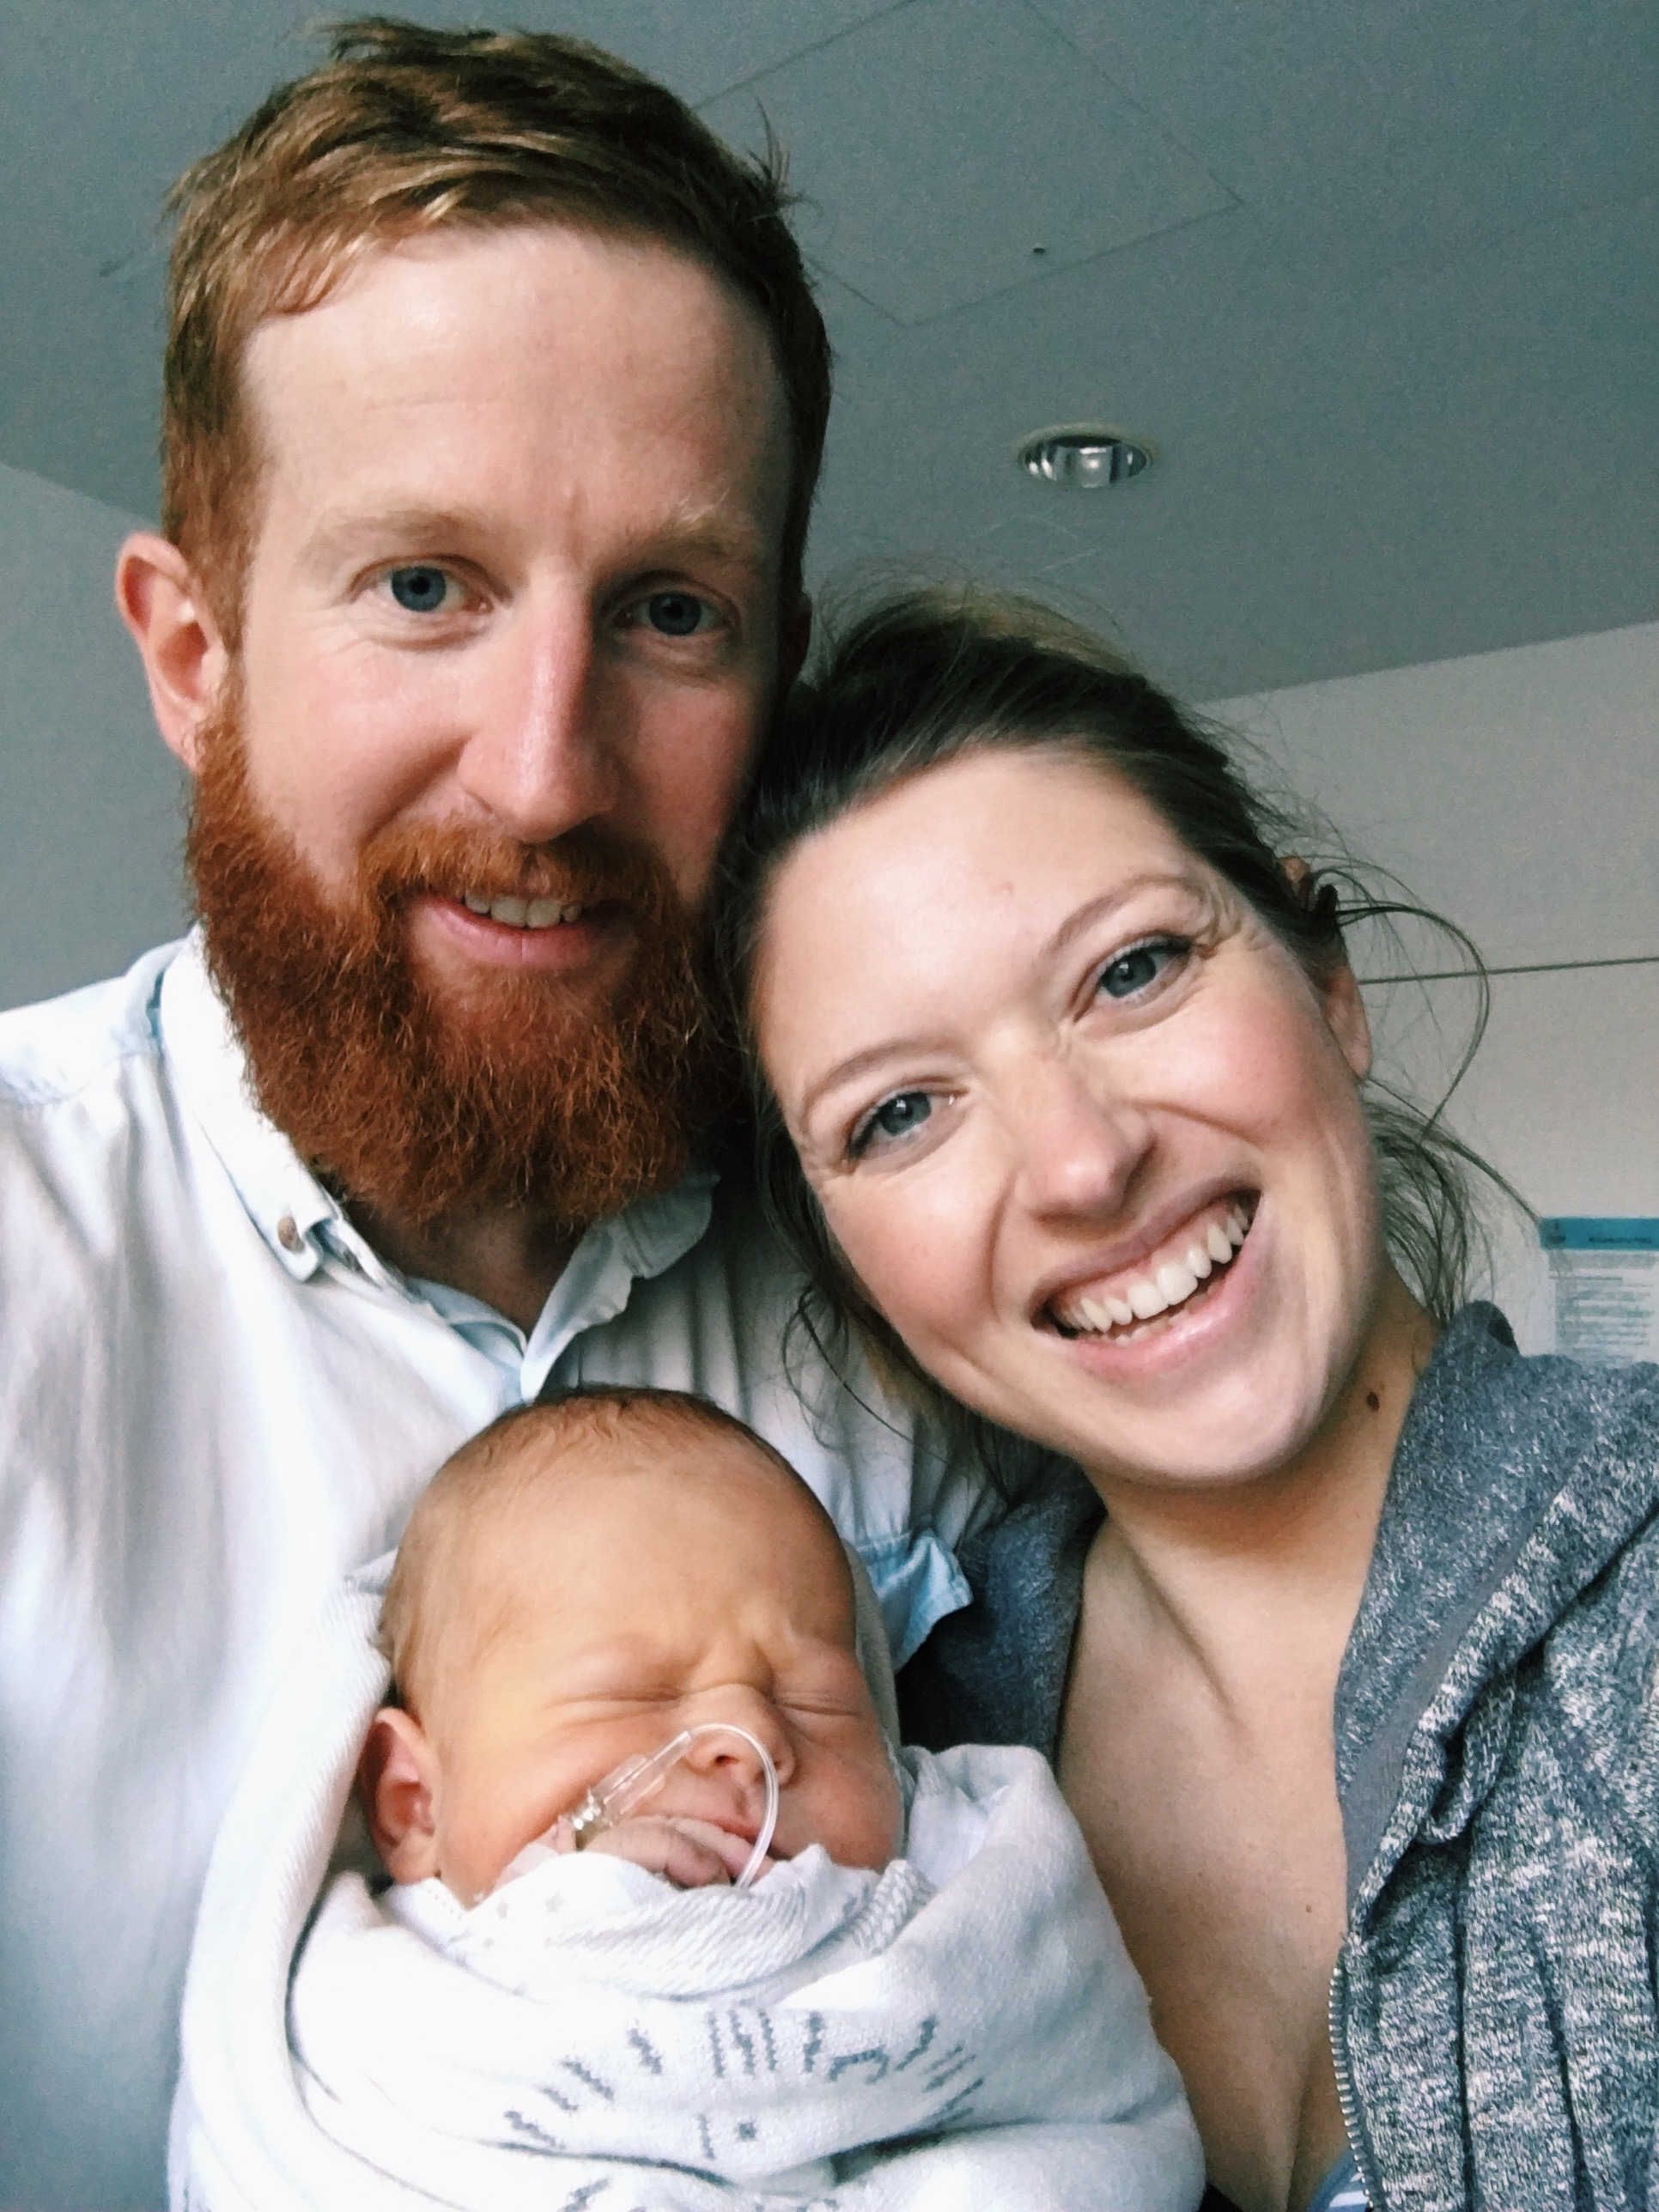 First family selfie in the hospital